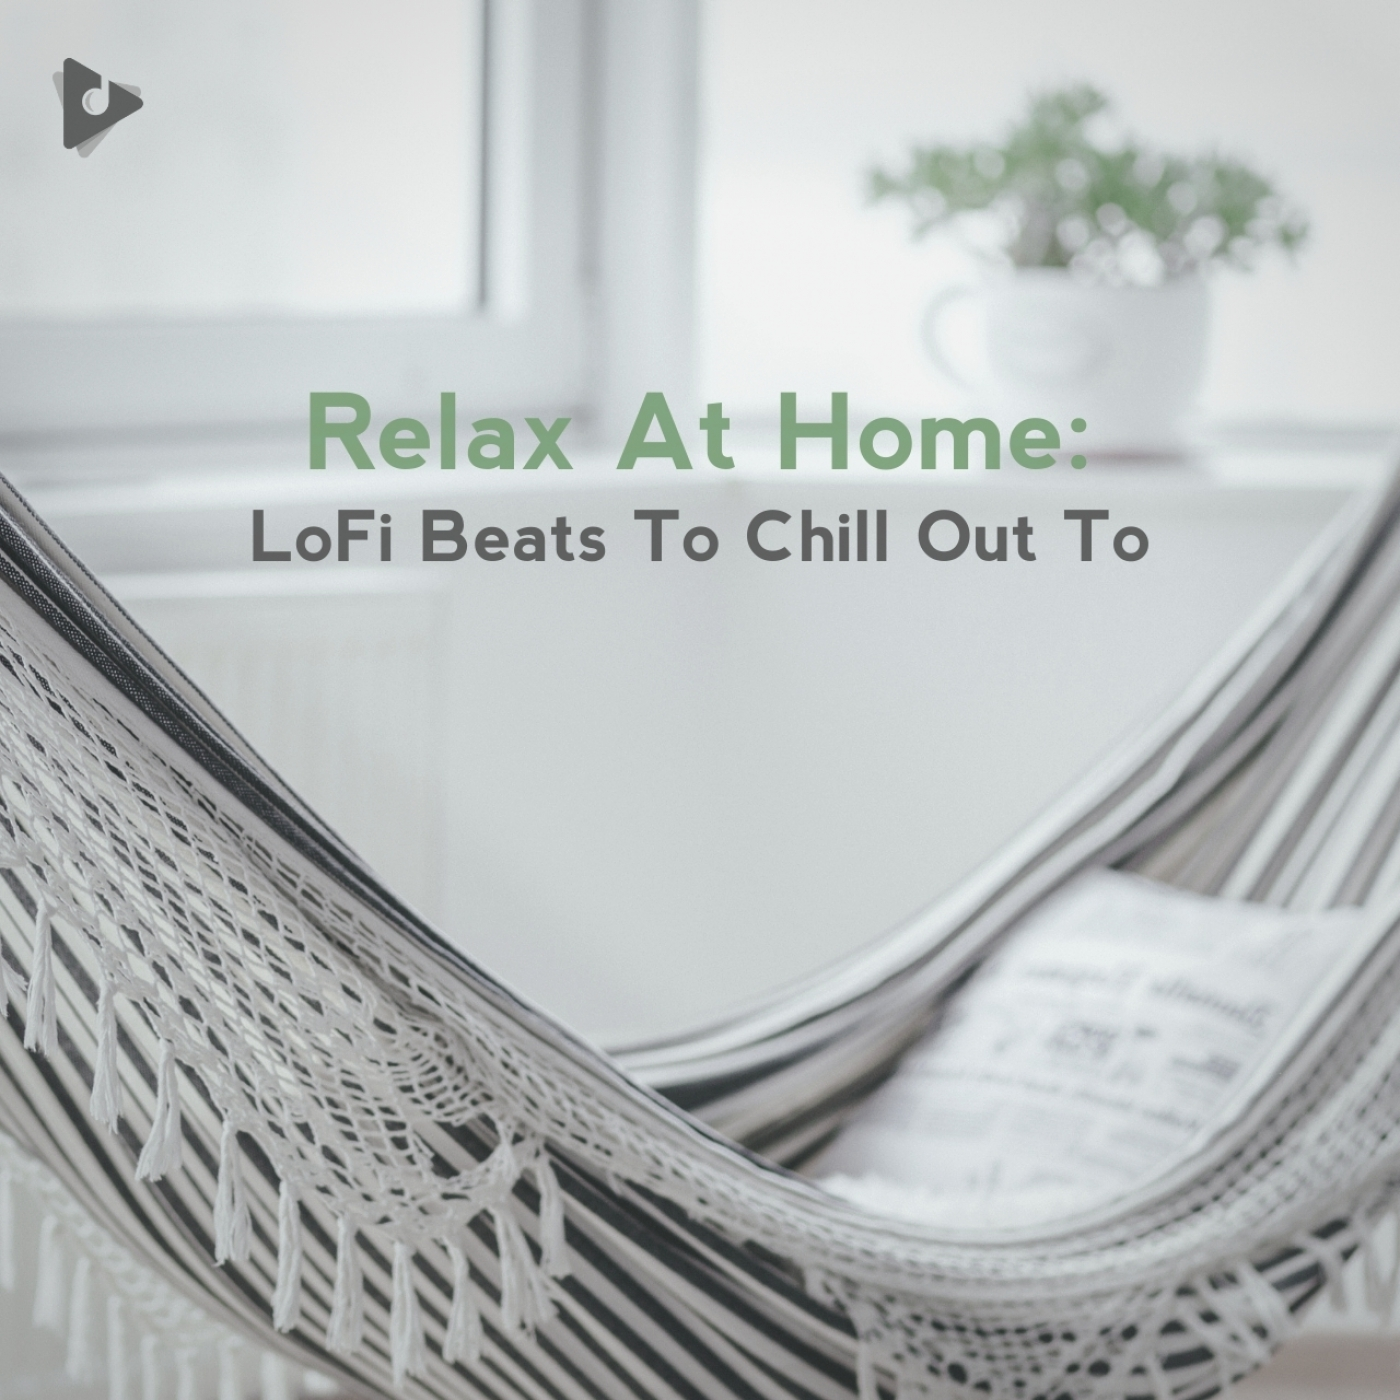 Stay-at-Home: LoFi Beats To Chill Out To